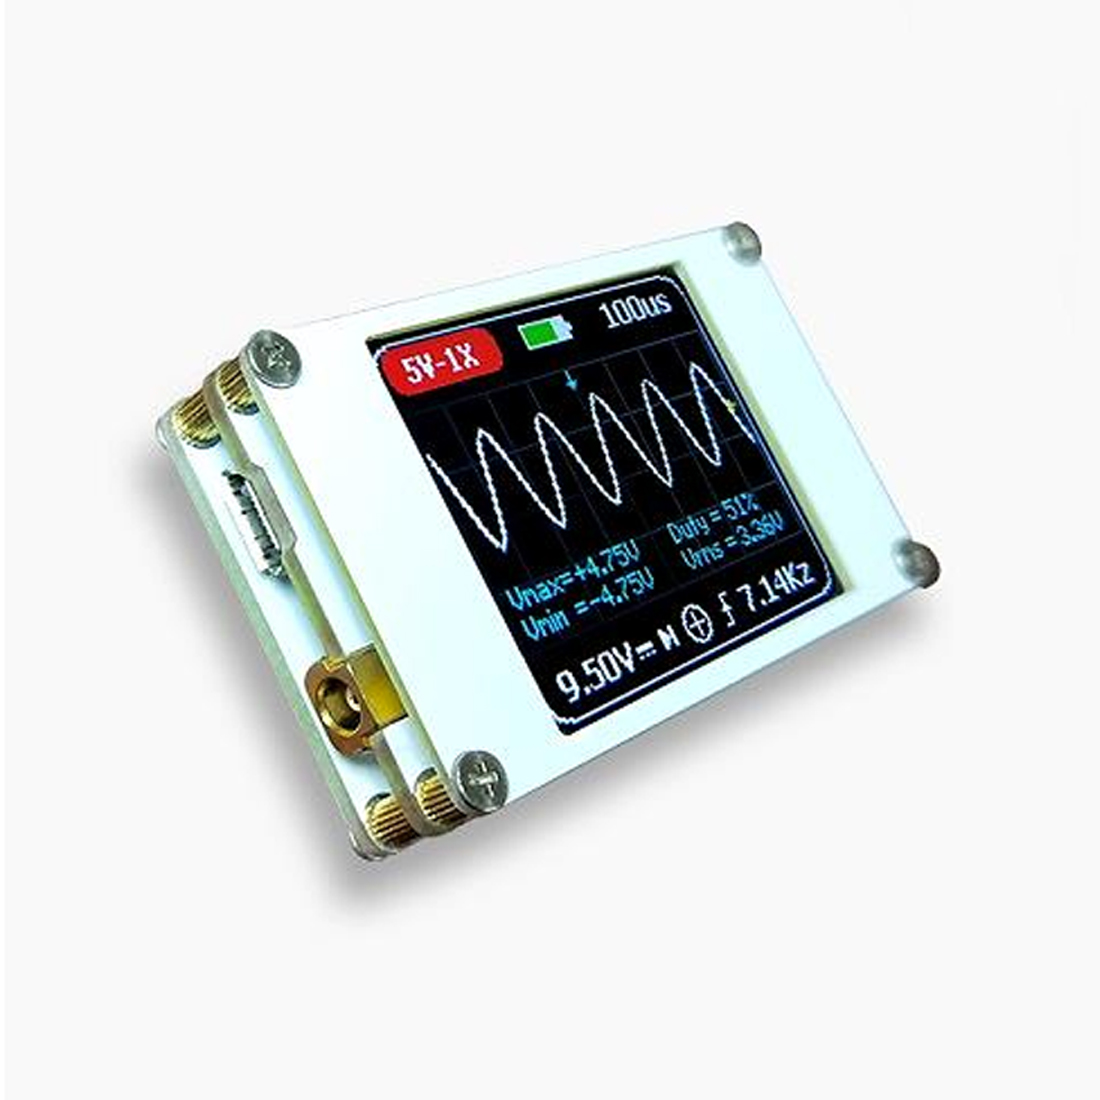 New Handheld Mini Pocket Portable Ultra-small Digital Oscilloscope 1M Bandwidth 5M Sample Rate Digital Oscilloscope Kit DSO188 2